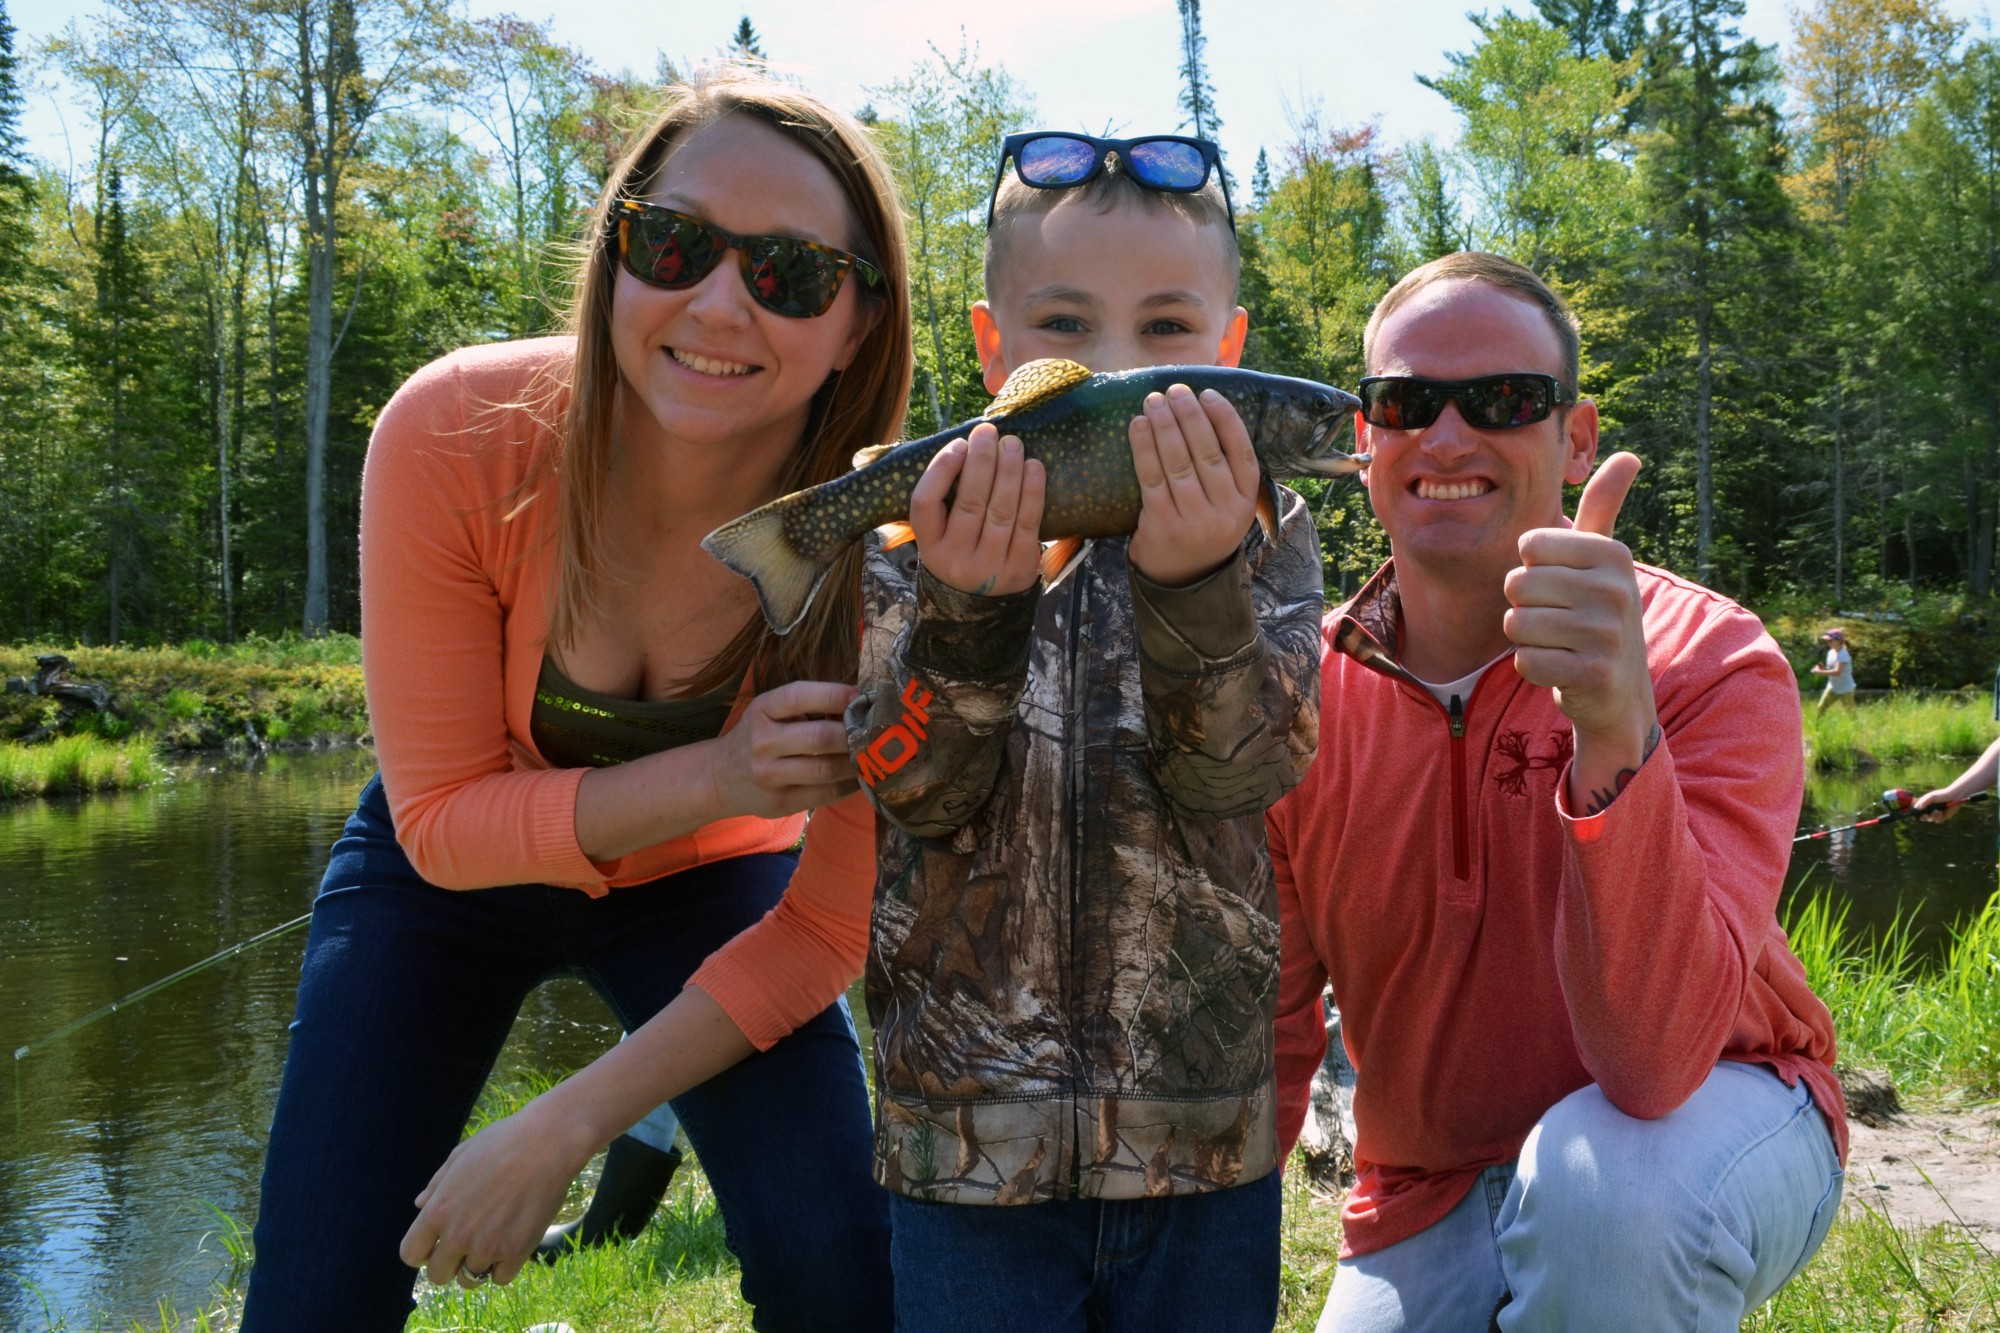 A woman and man pose with a child who is holding a fish. A pond and woods are in the background.